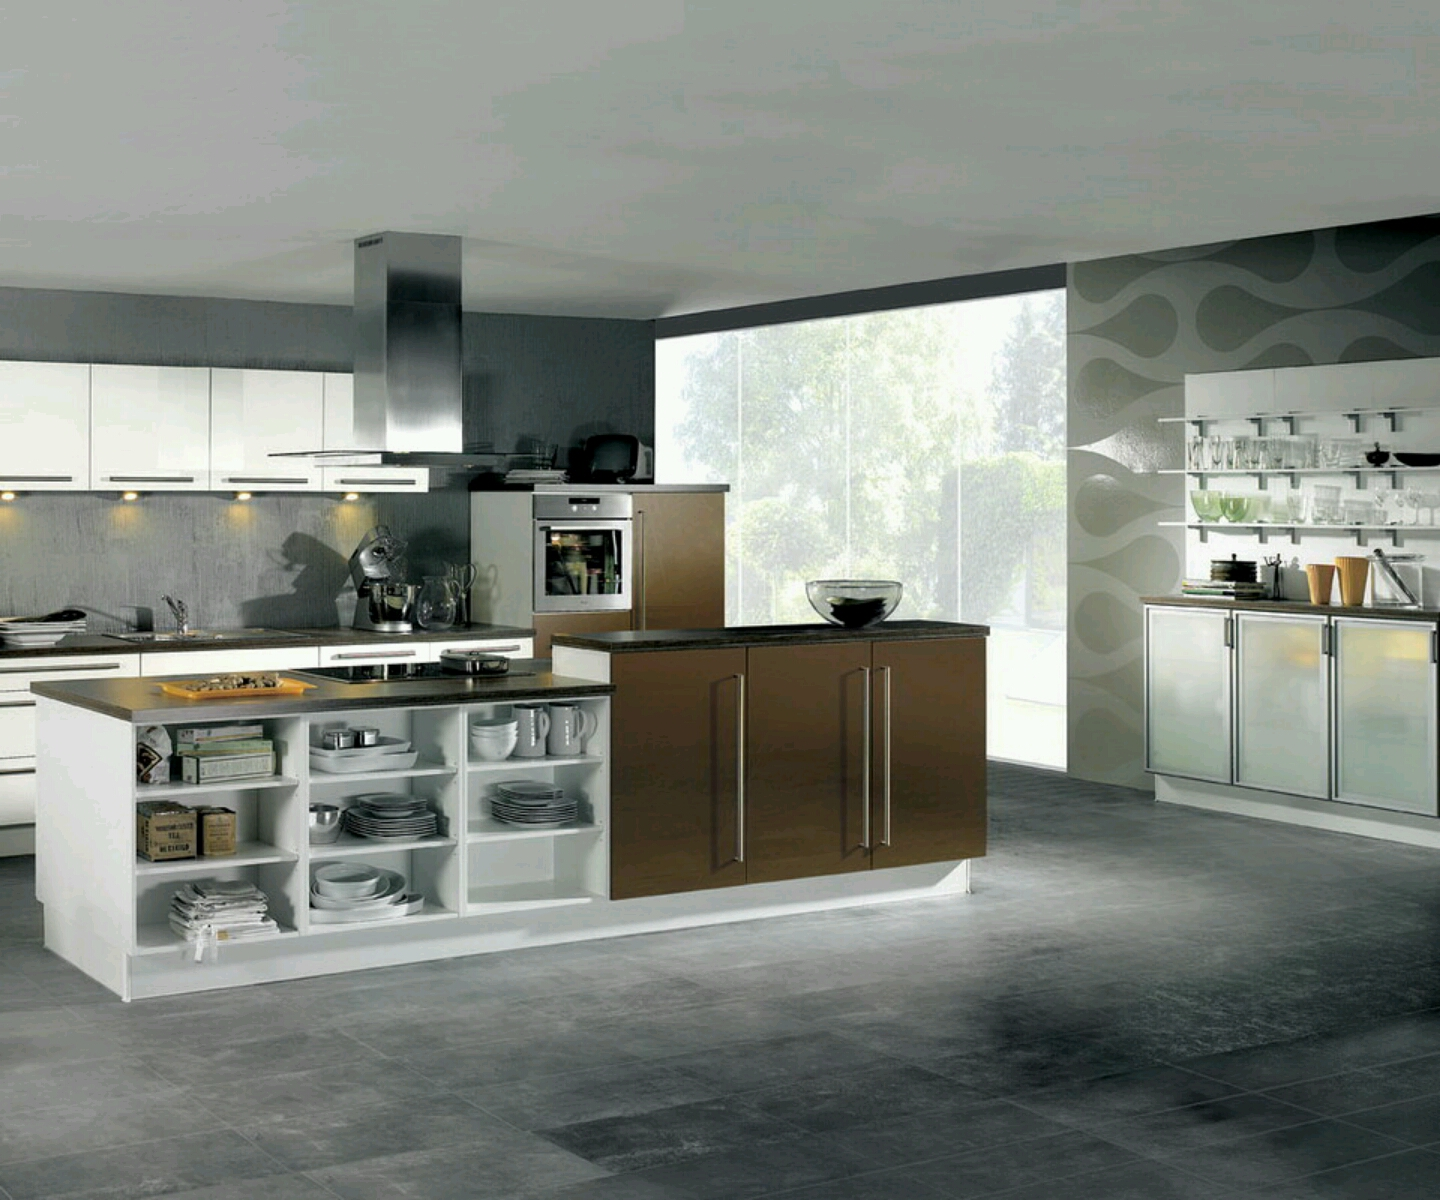 New home designs latest.: Ultra modern kitchen designs ideas.